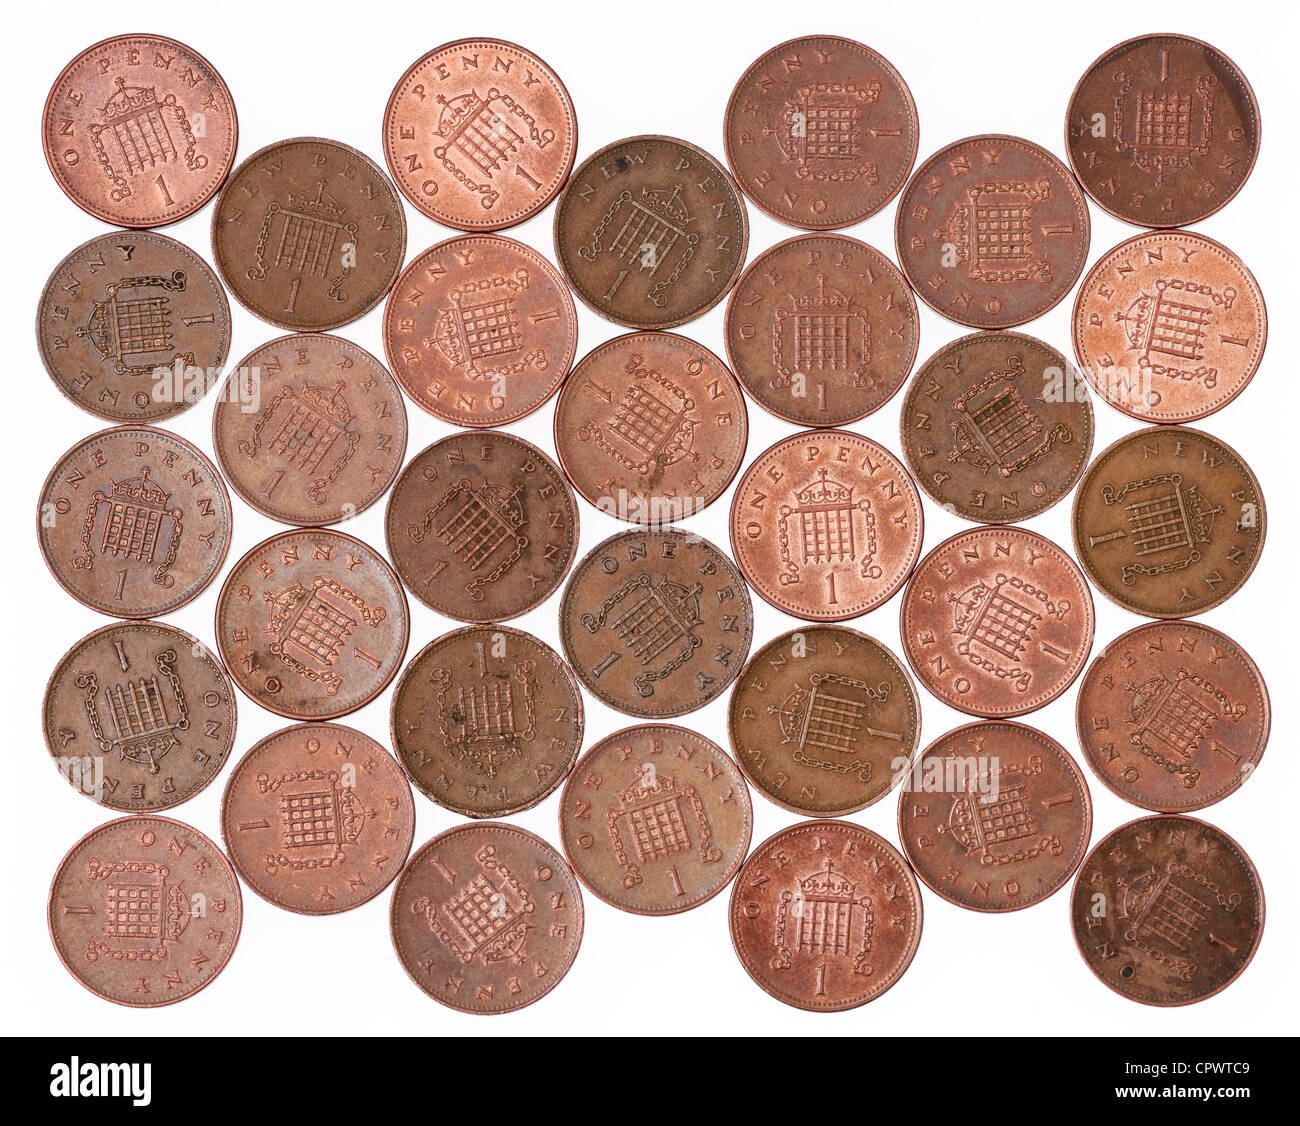 UK 1p coins - Stock Image